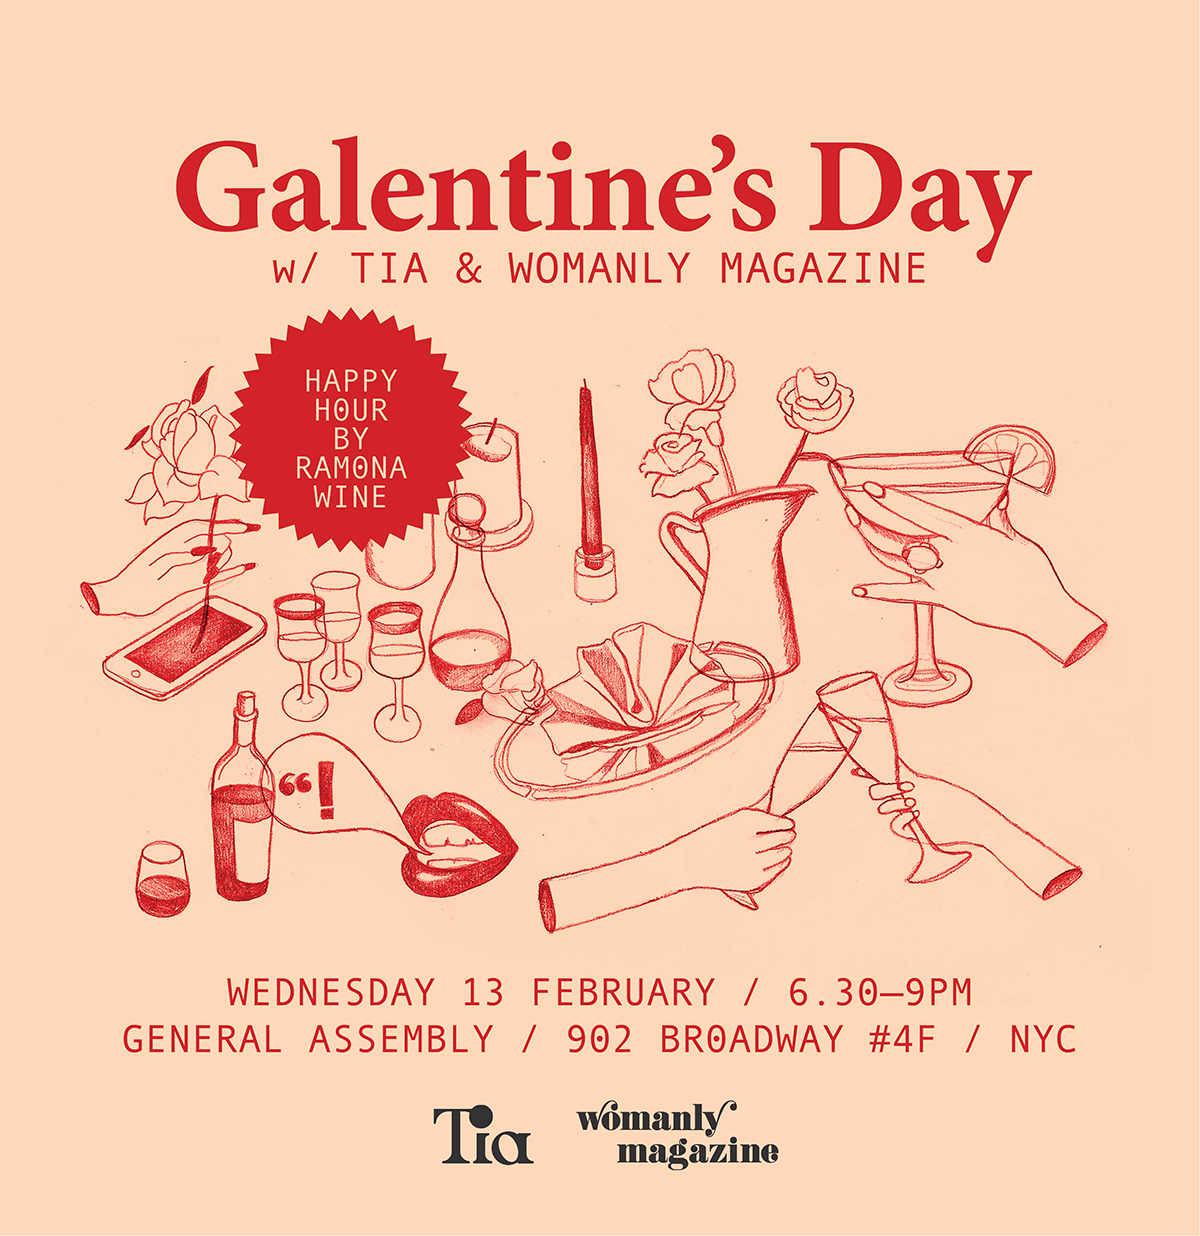 Galentine's Day with Tia & Womanly Magazine